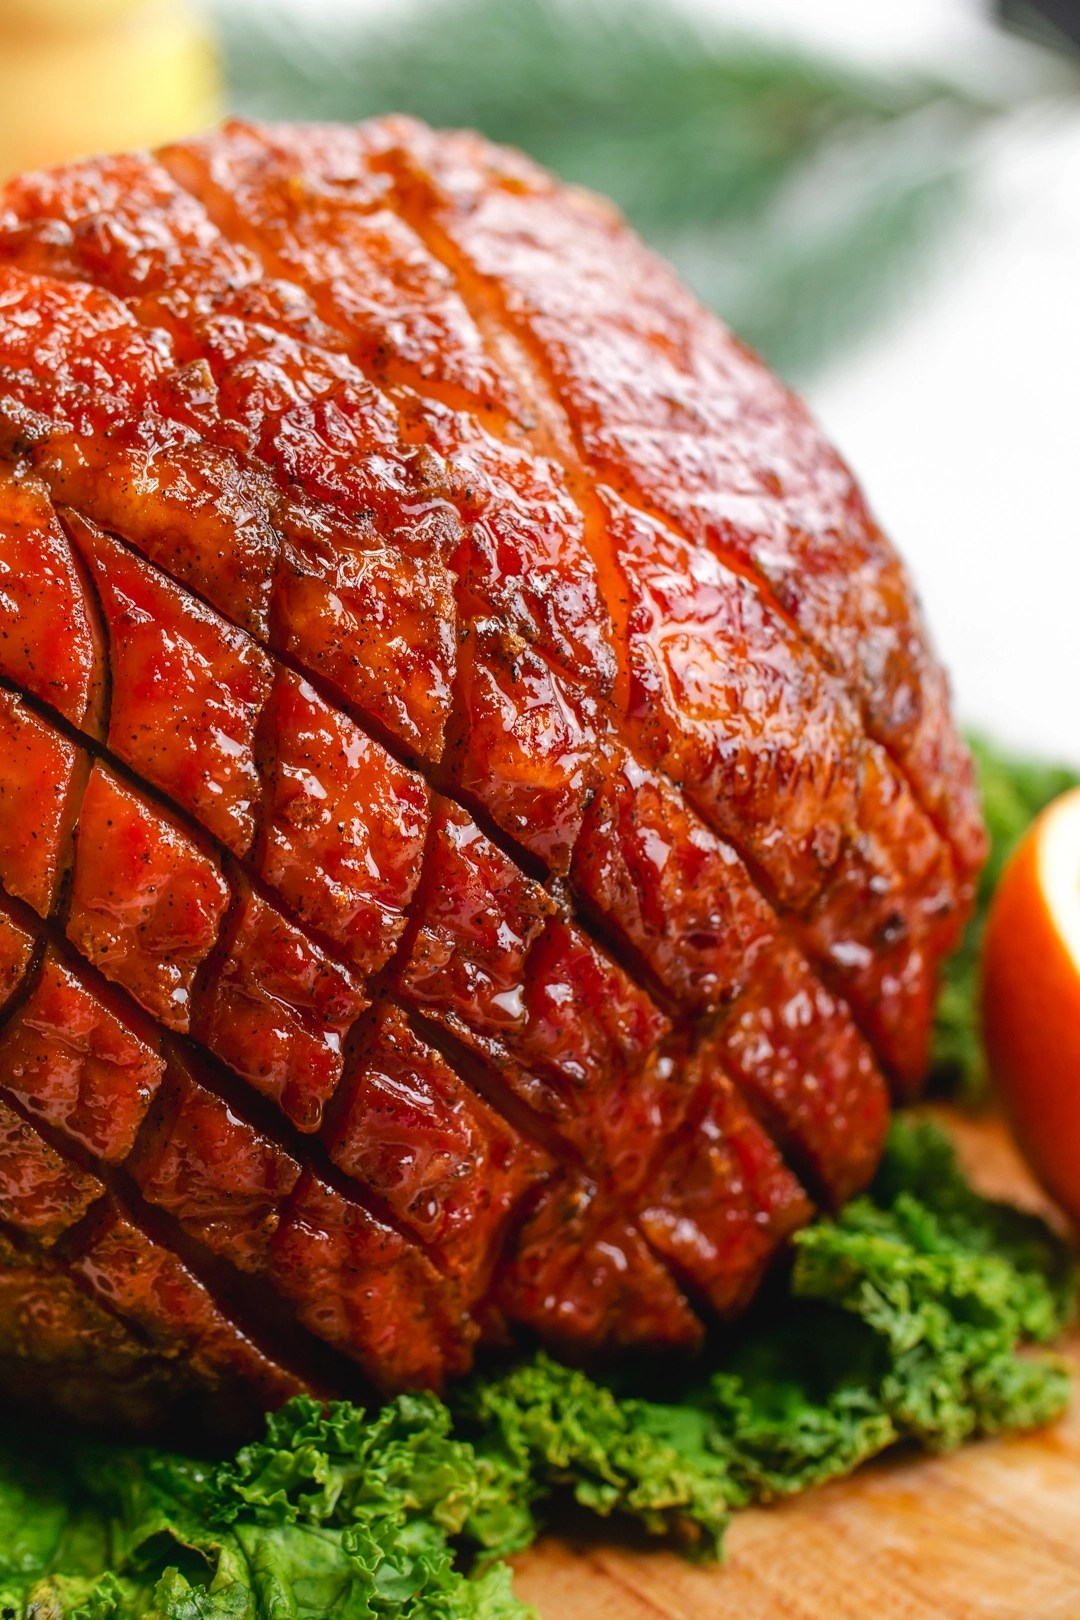 A perfectly scoured and glazed ham